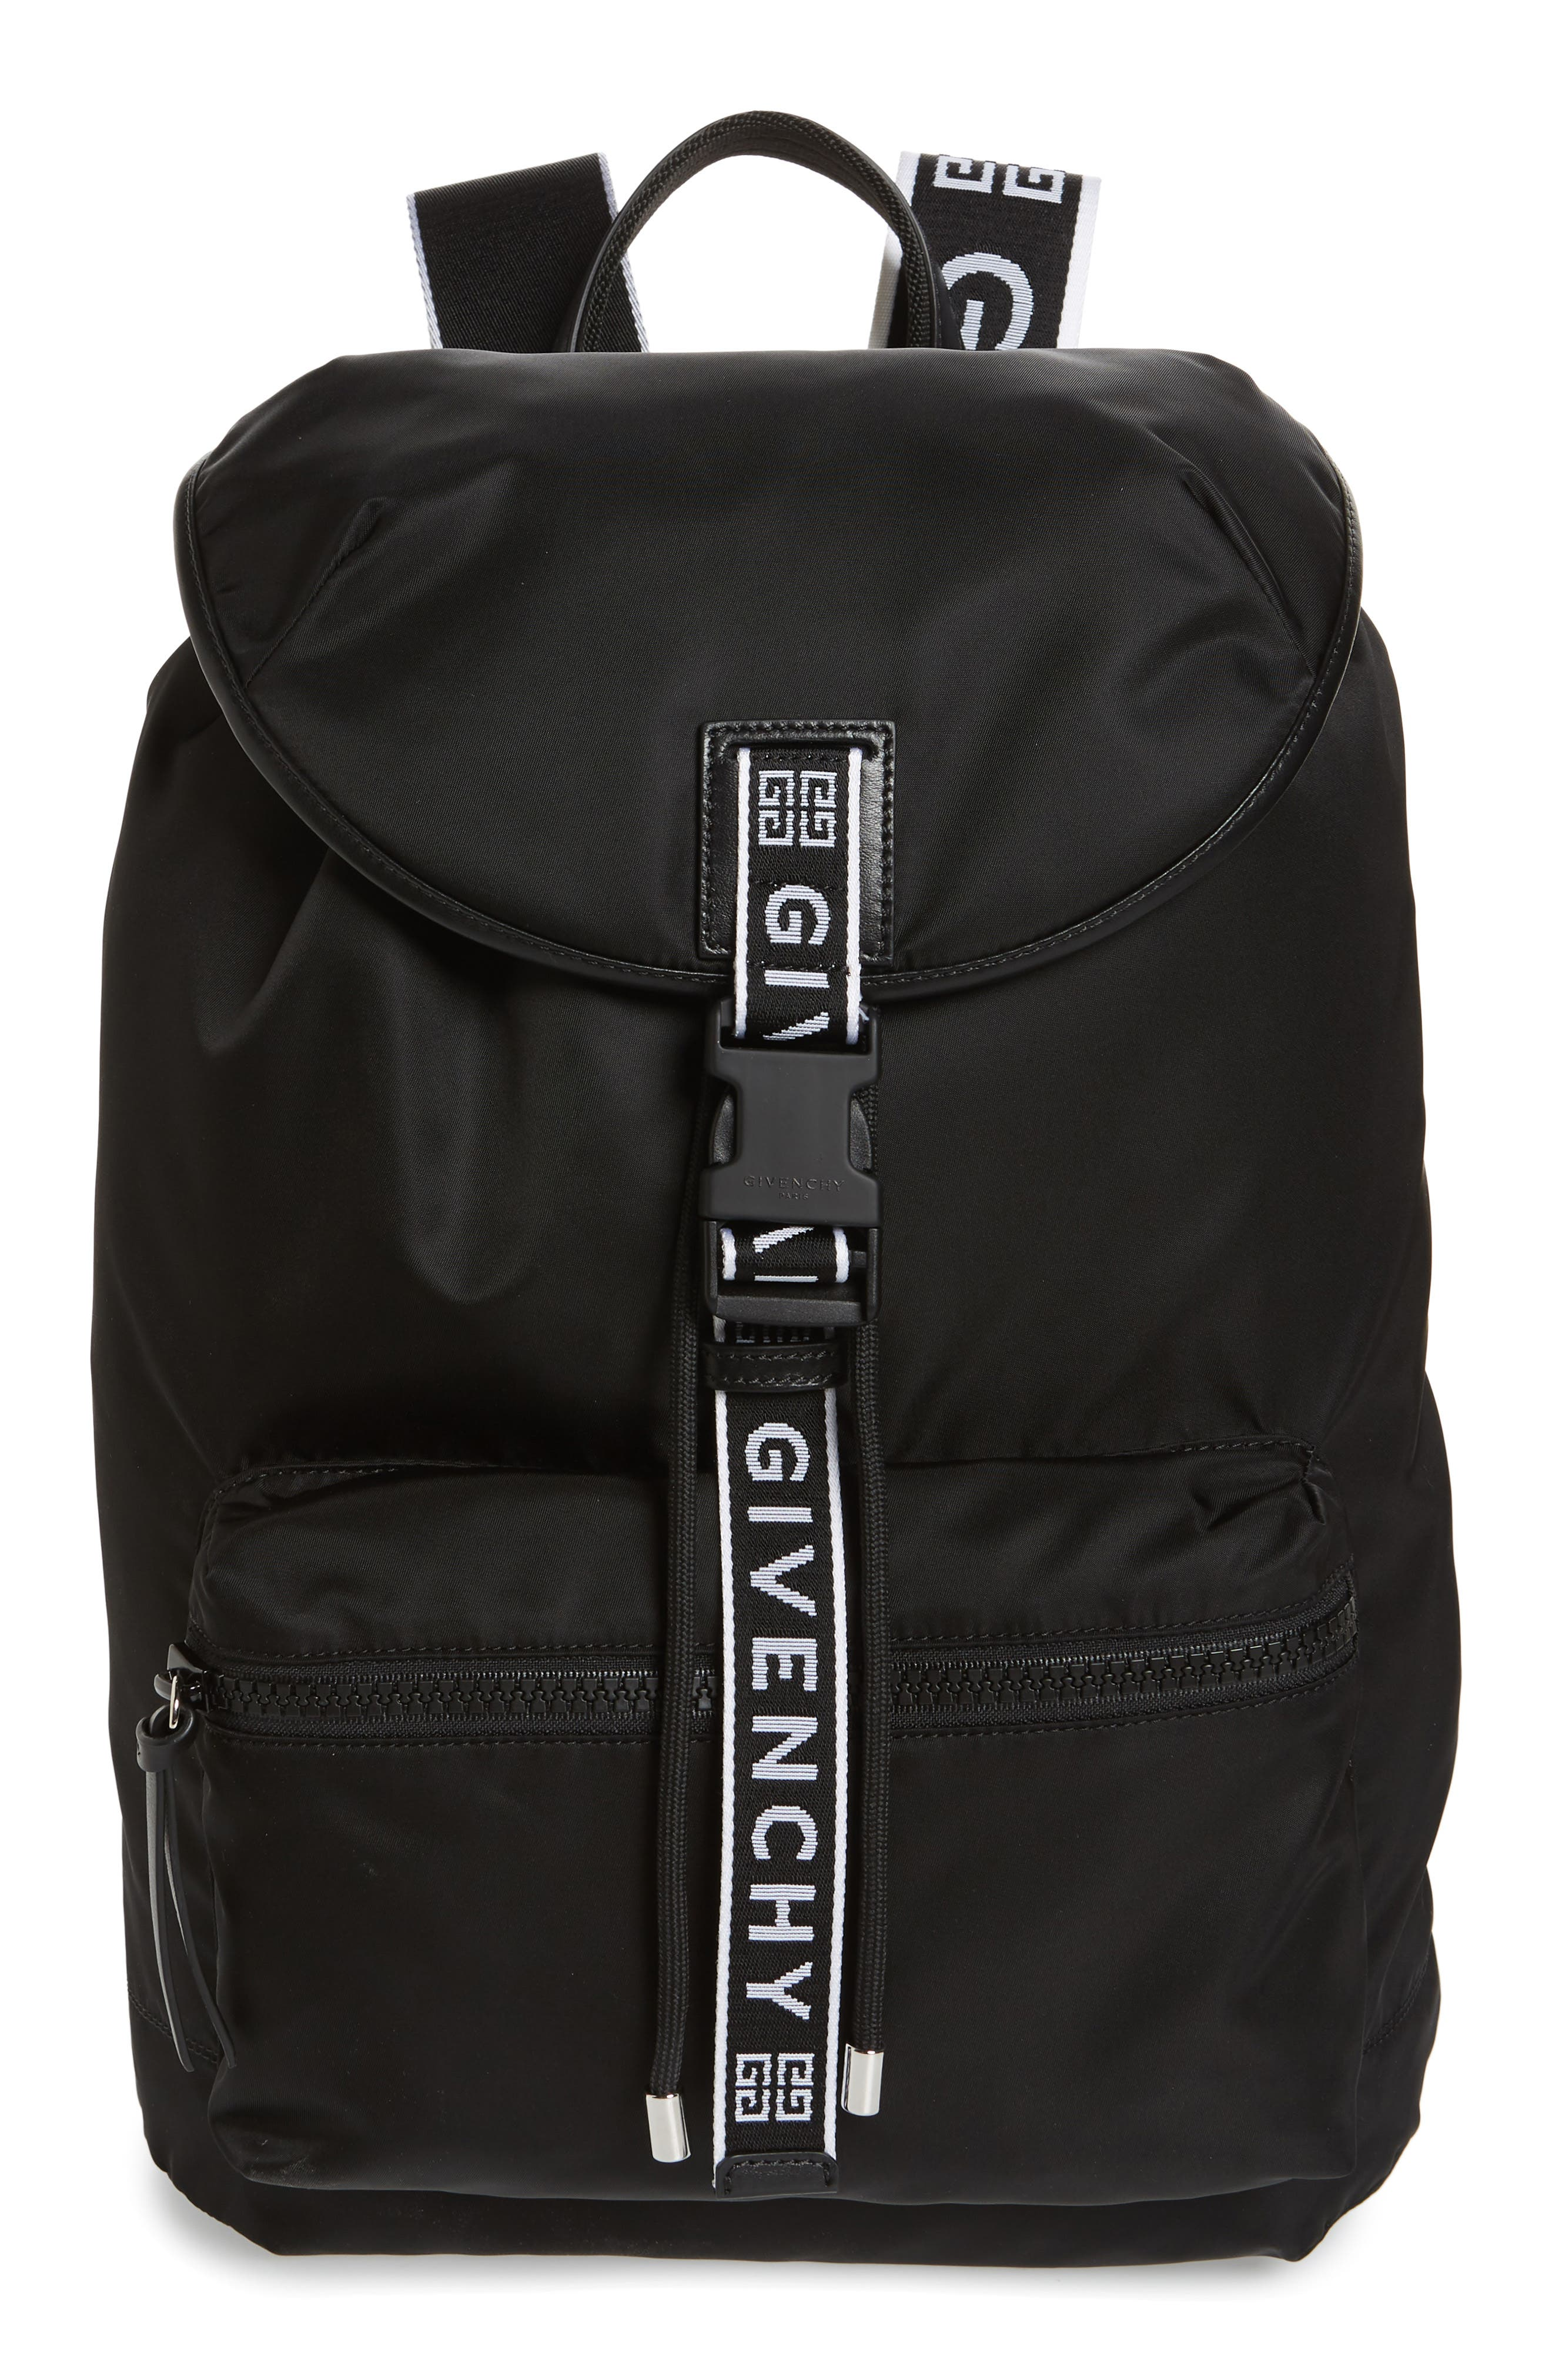 GIVENCHY Light 3 Backpack, Main, color, BLACK/ WHITE